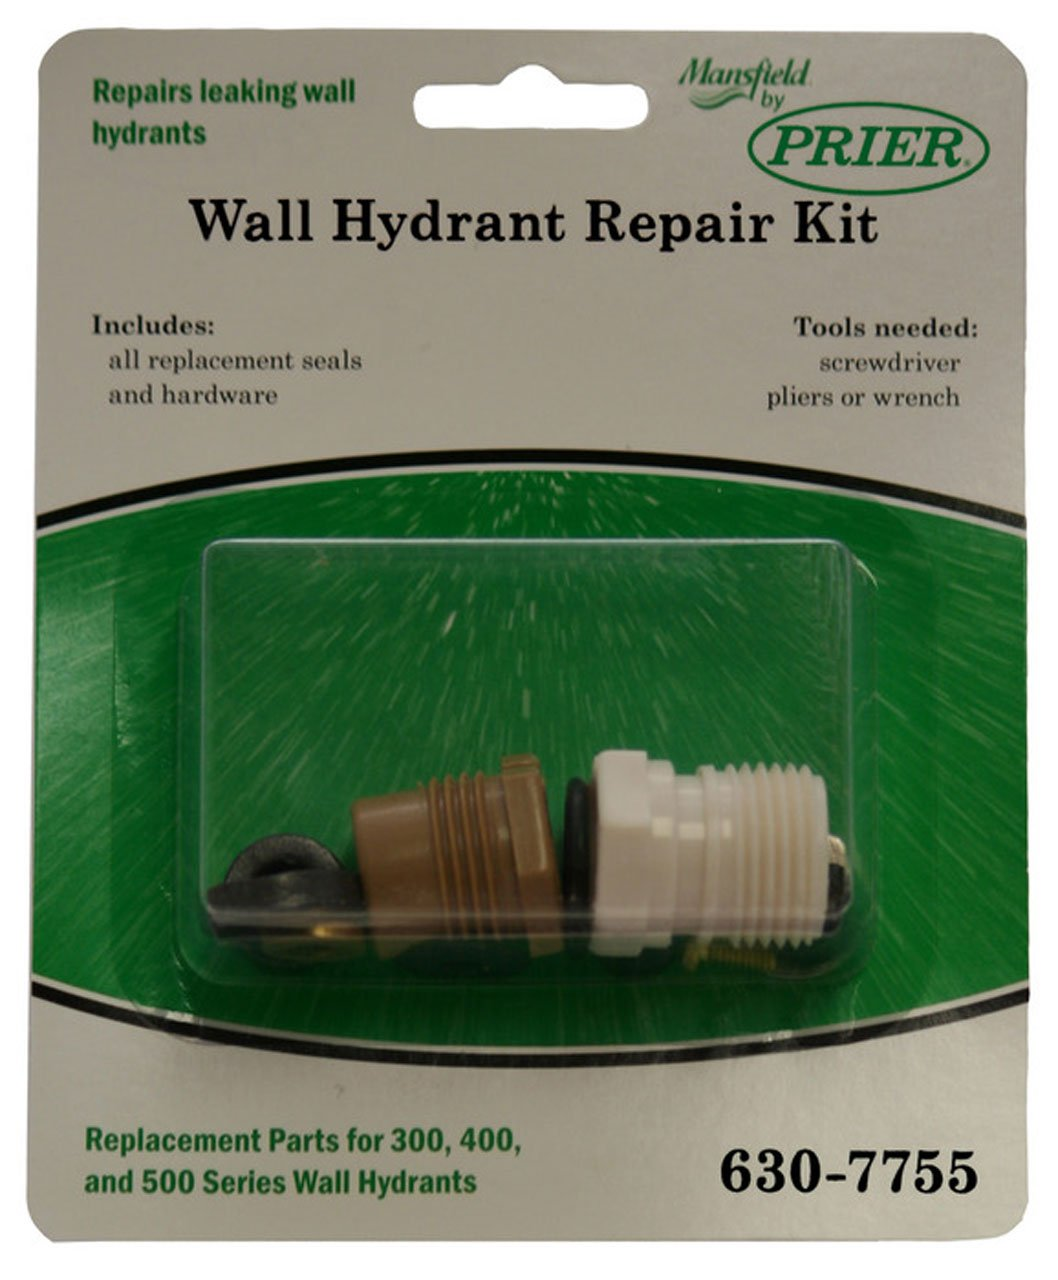 Amazon.com: Prier 630-7755 Wall Hydrant Repair Kit: Home Improvement